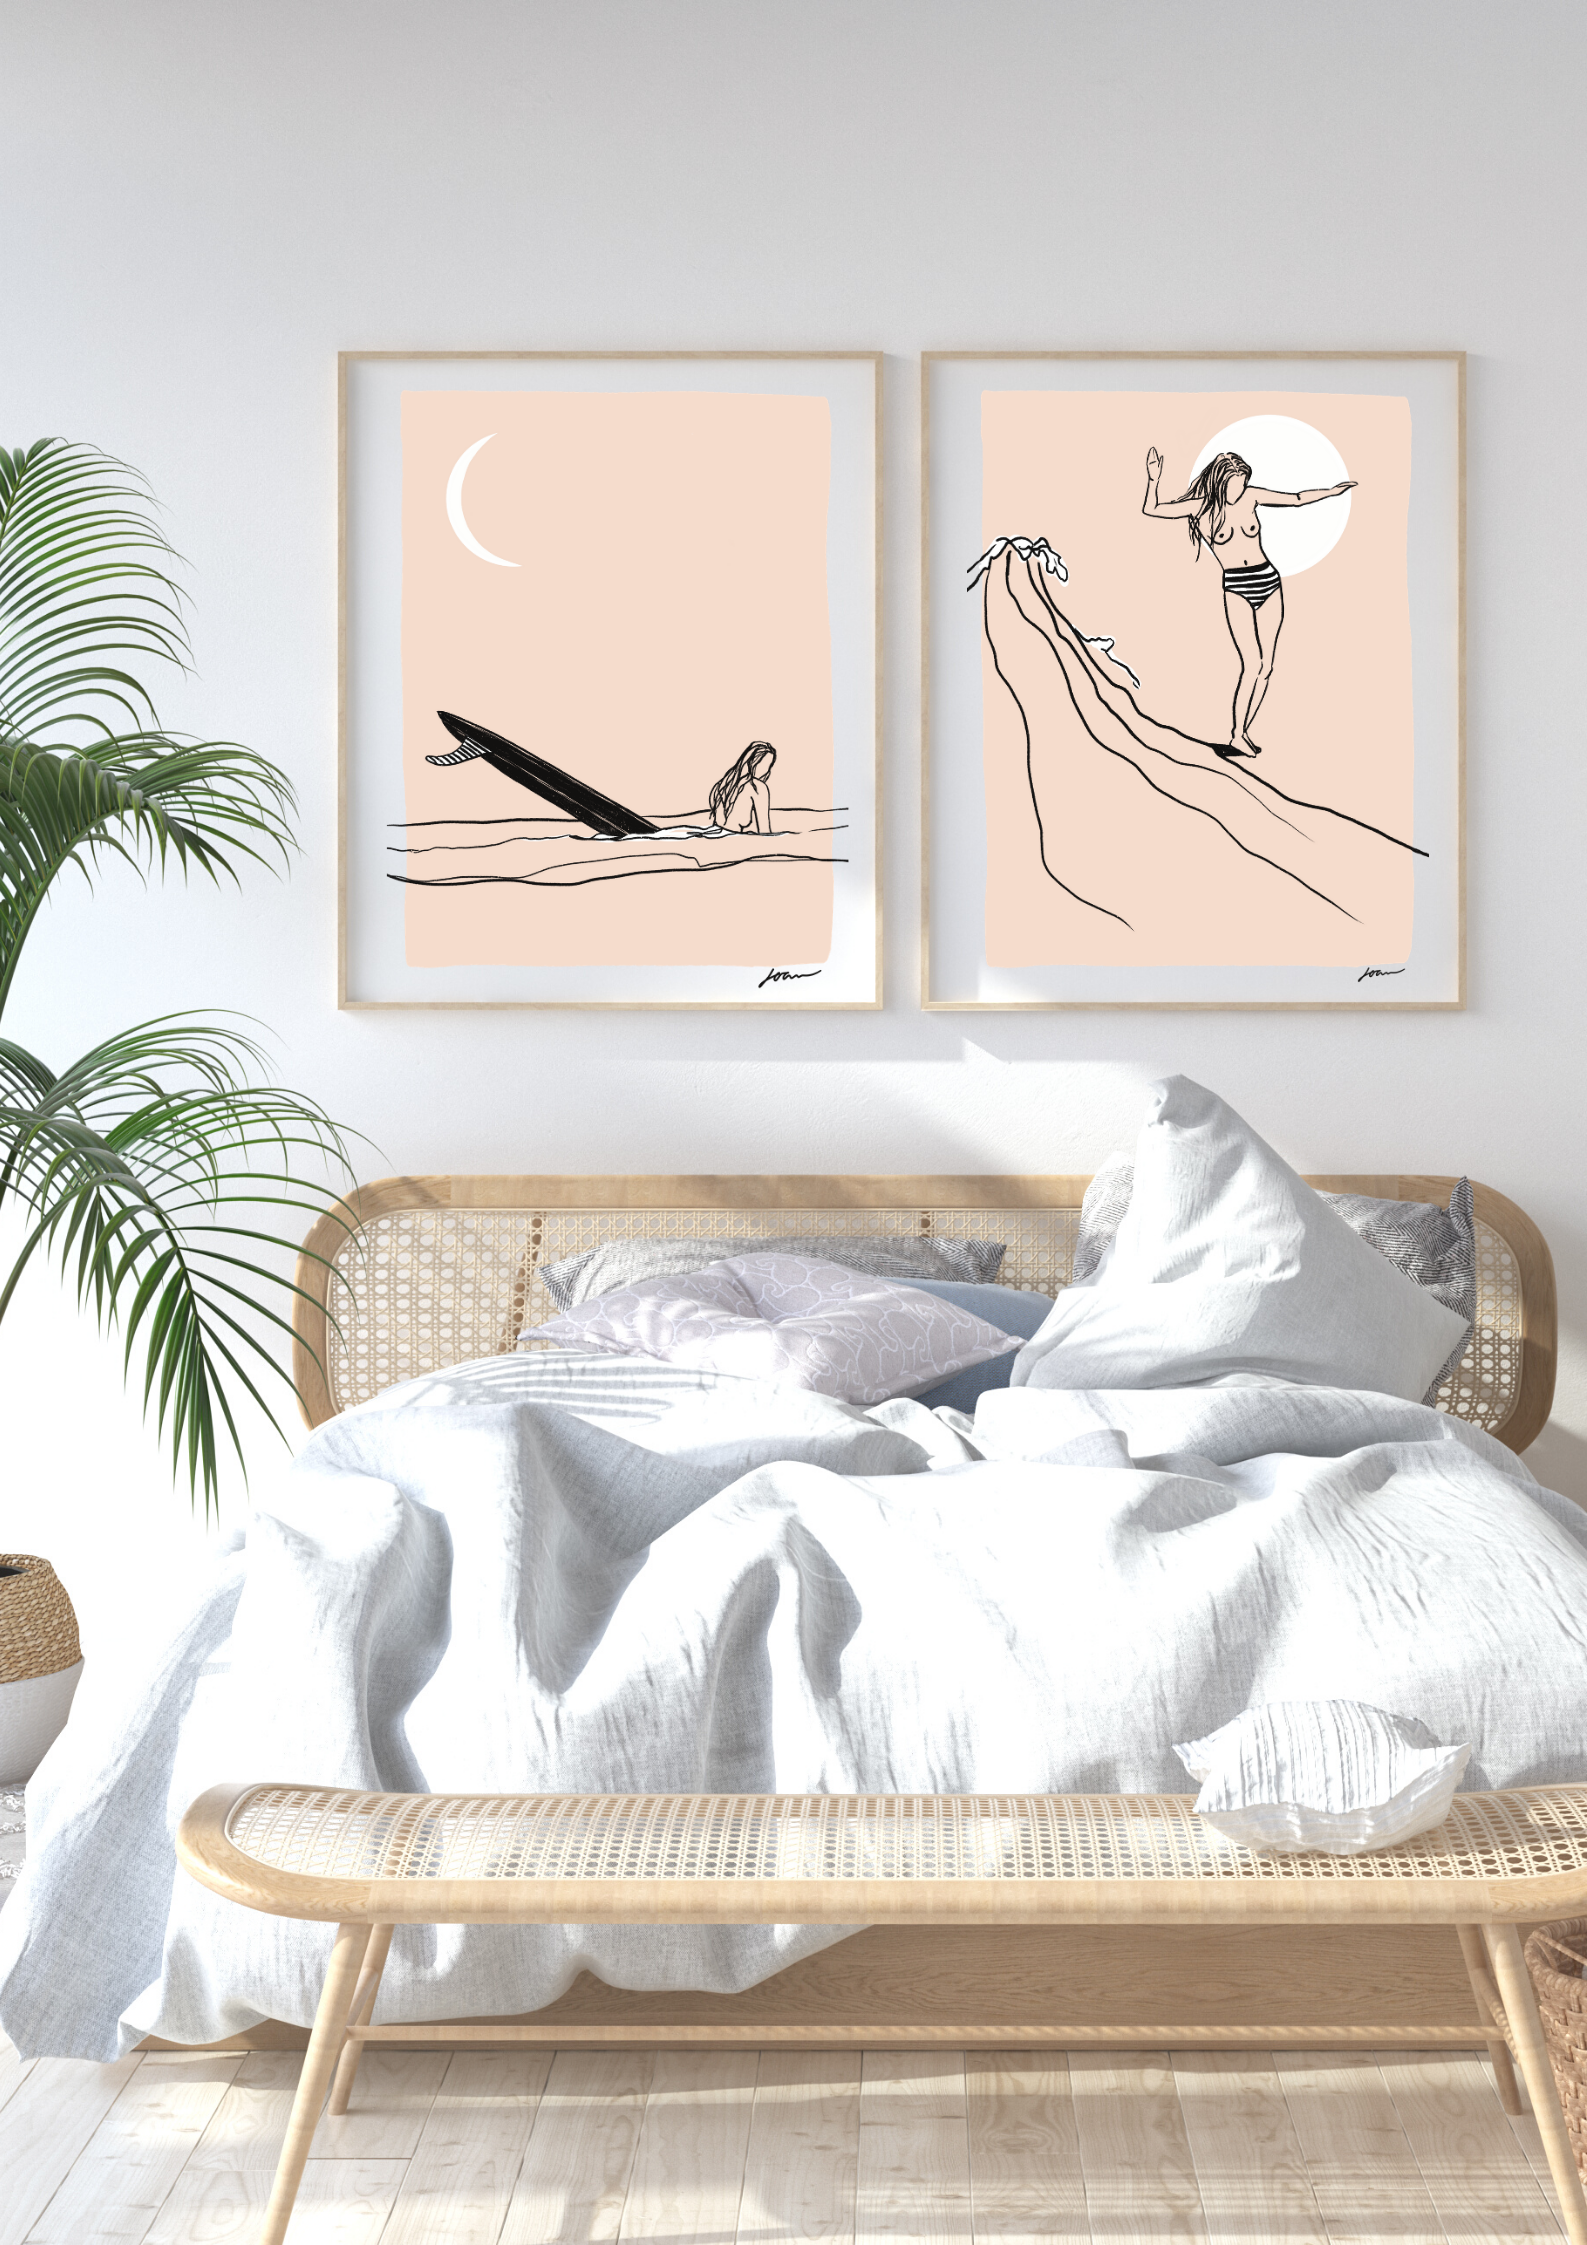 two prints of surfgirls in frame on wall